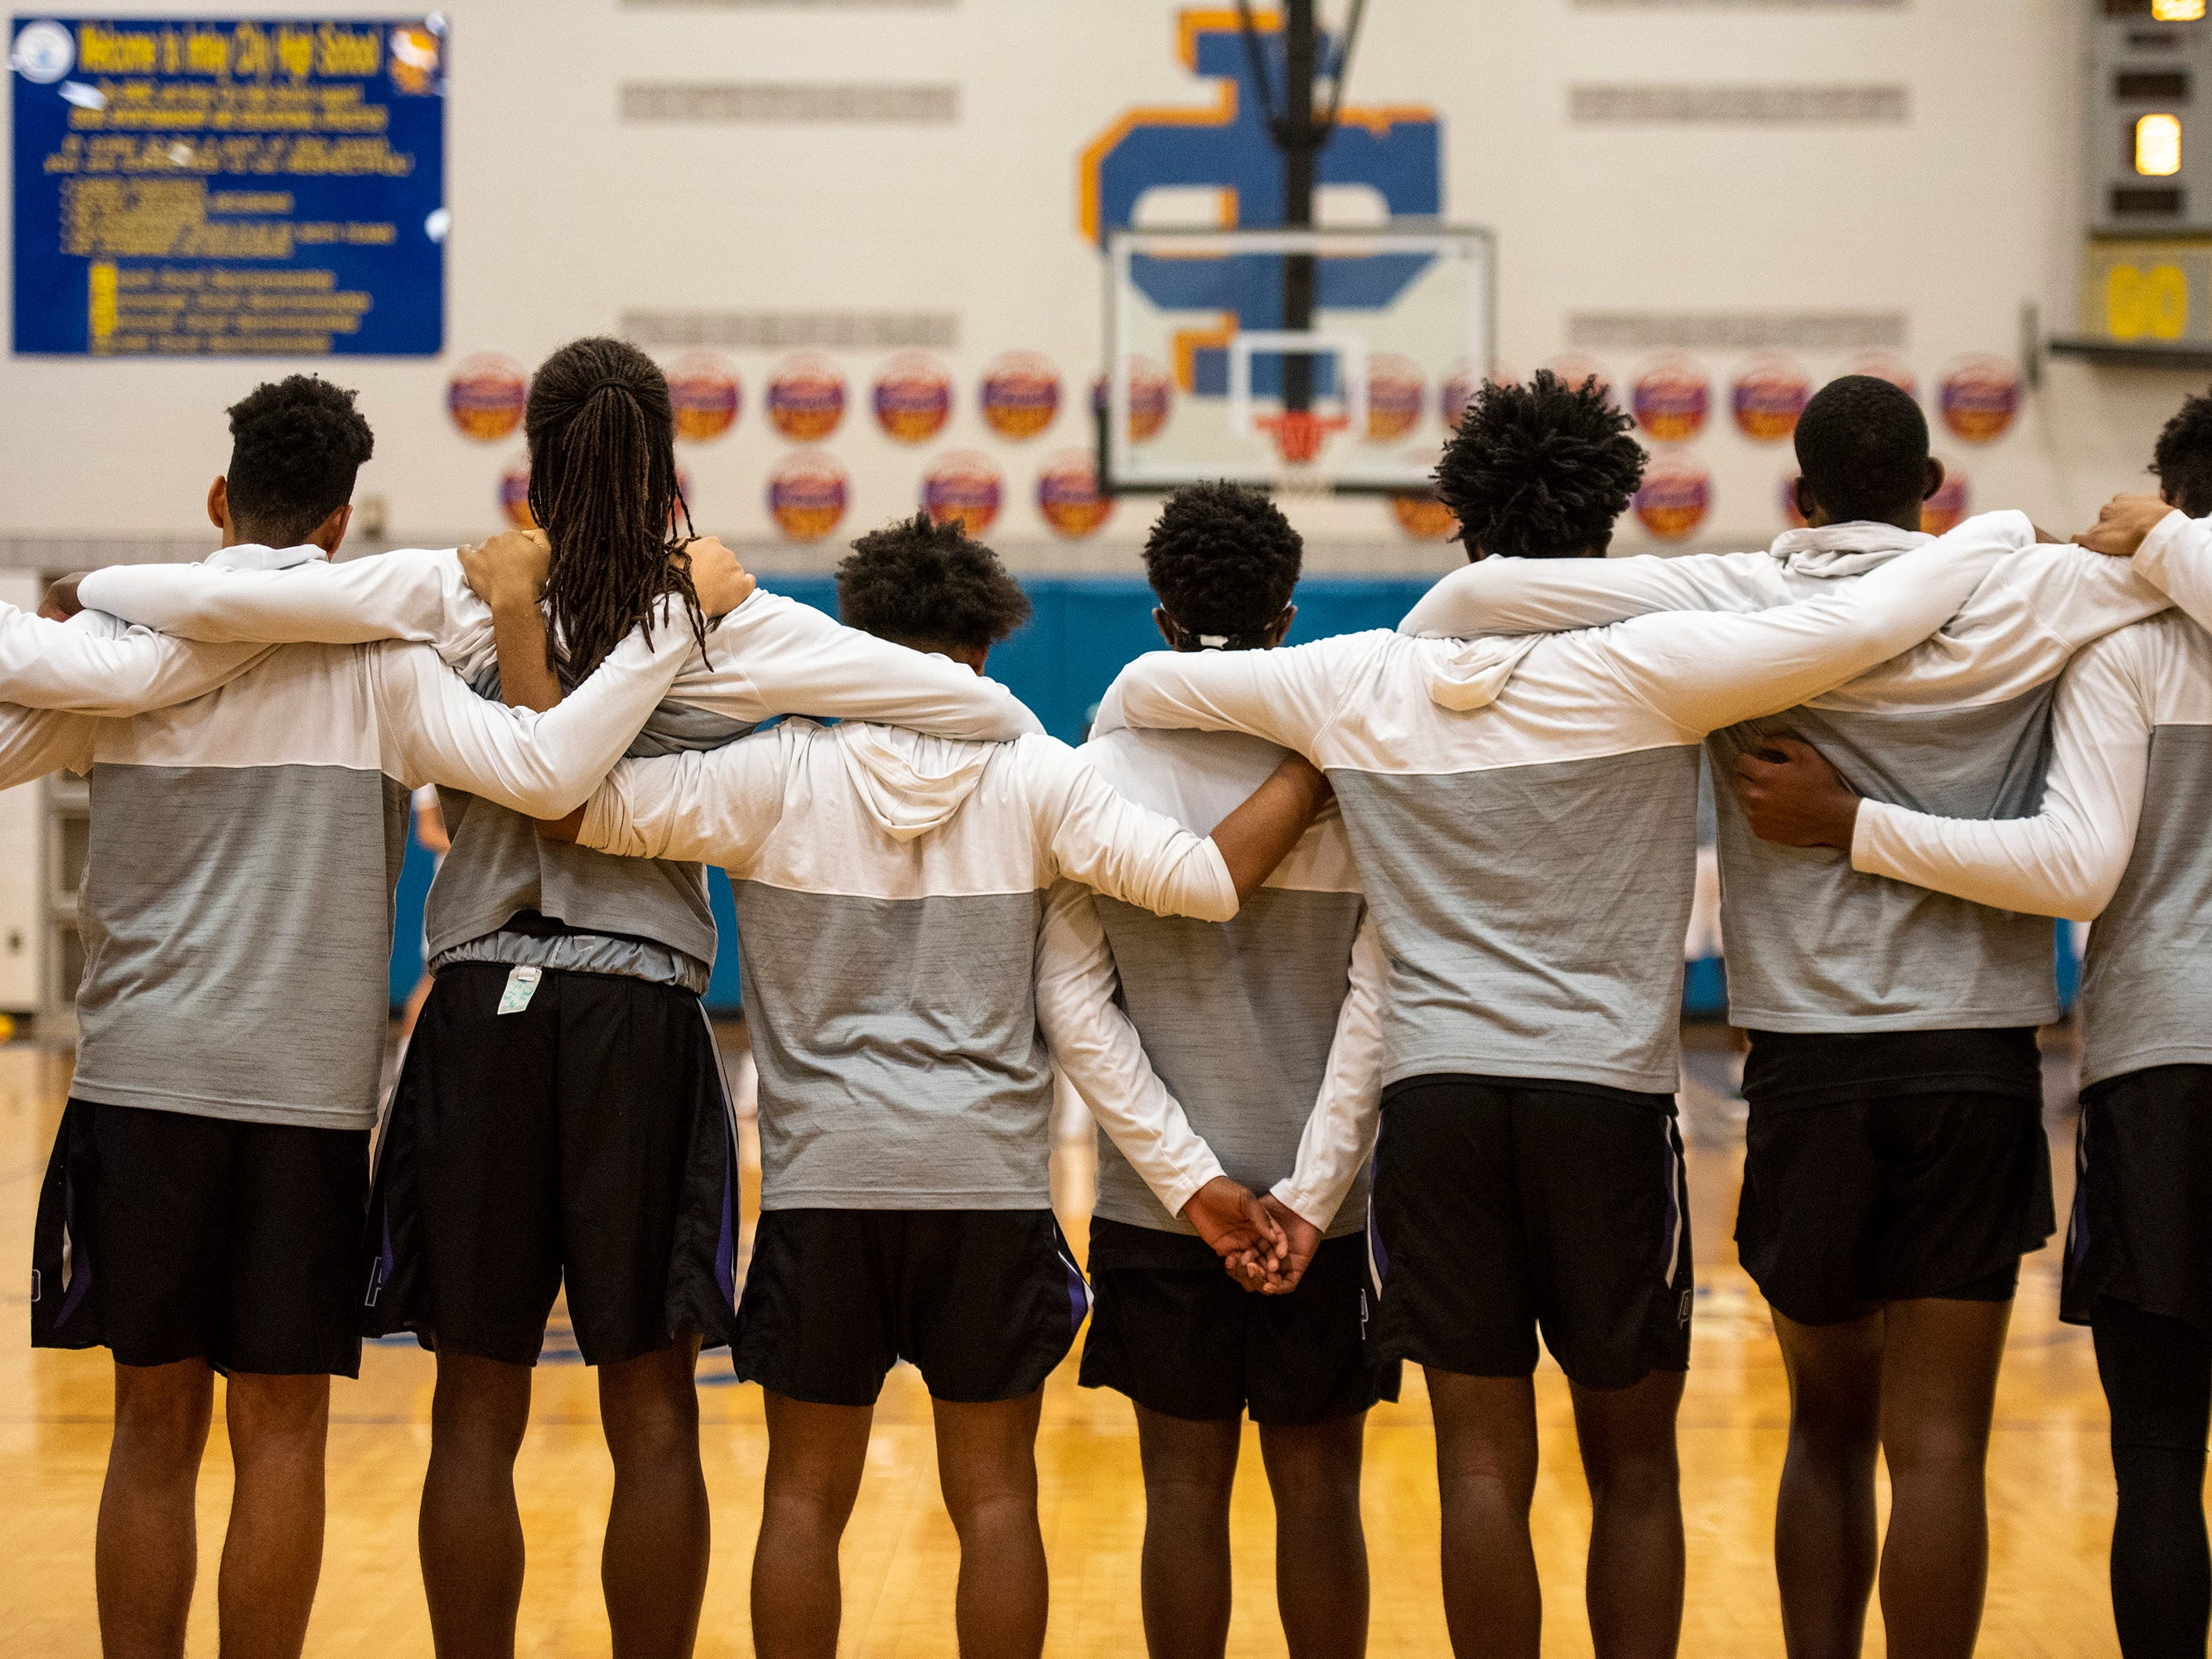 Members of the New Haven High School basketball team link up before the National Anthem at the start of the MHSAA Division 2 regional basketball finals against Pontiac High School Thursday, March 7, 2019 at Imlay City High School.